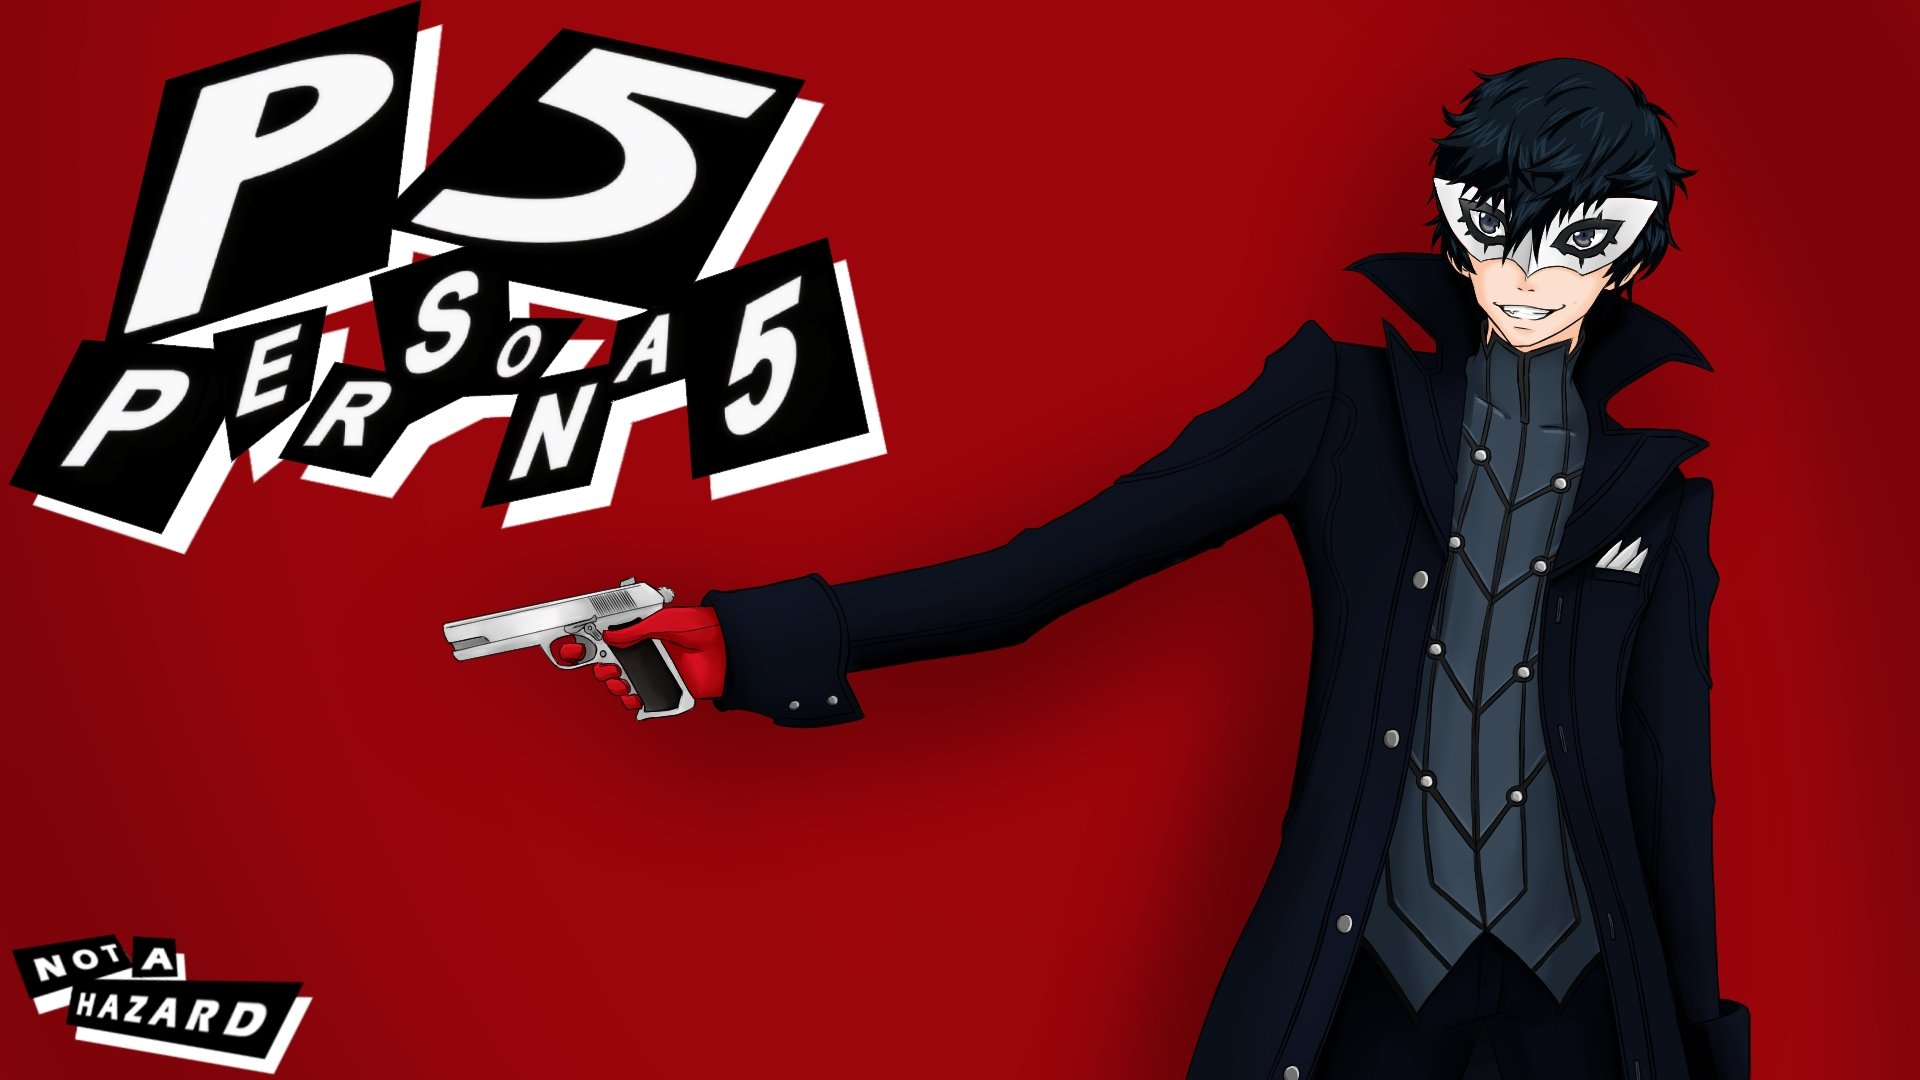 Persona 5 Wallpapers 1920x1080 Full Hd 1080p Desktop Backgrounds